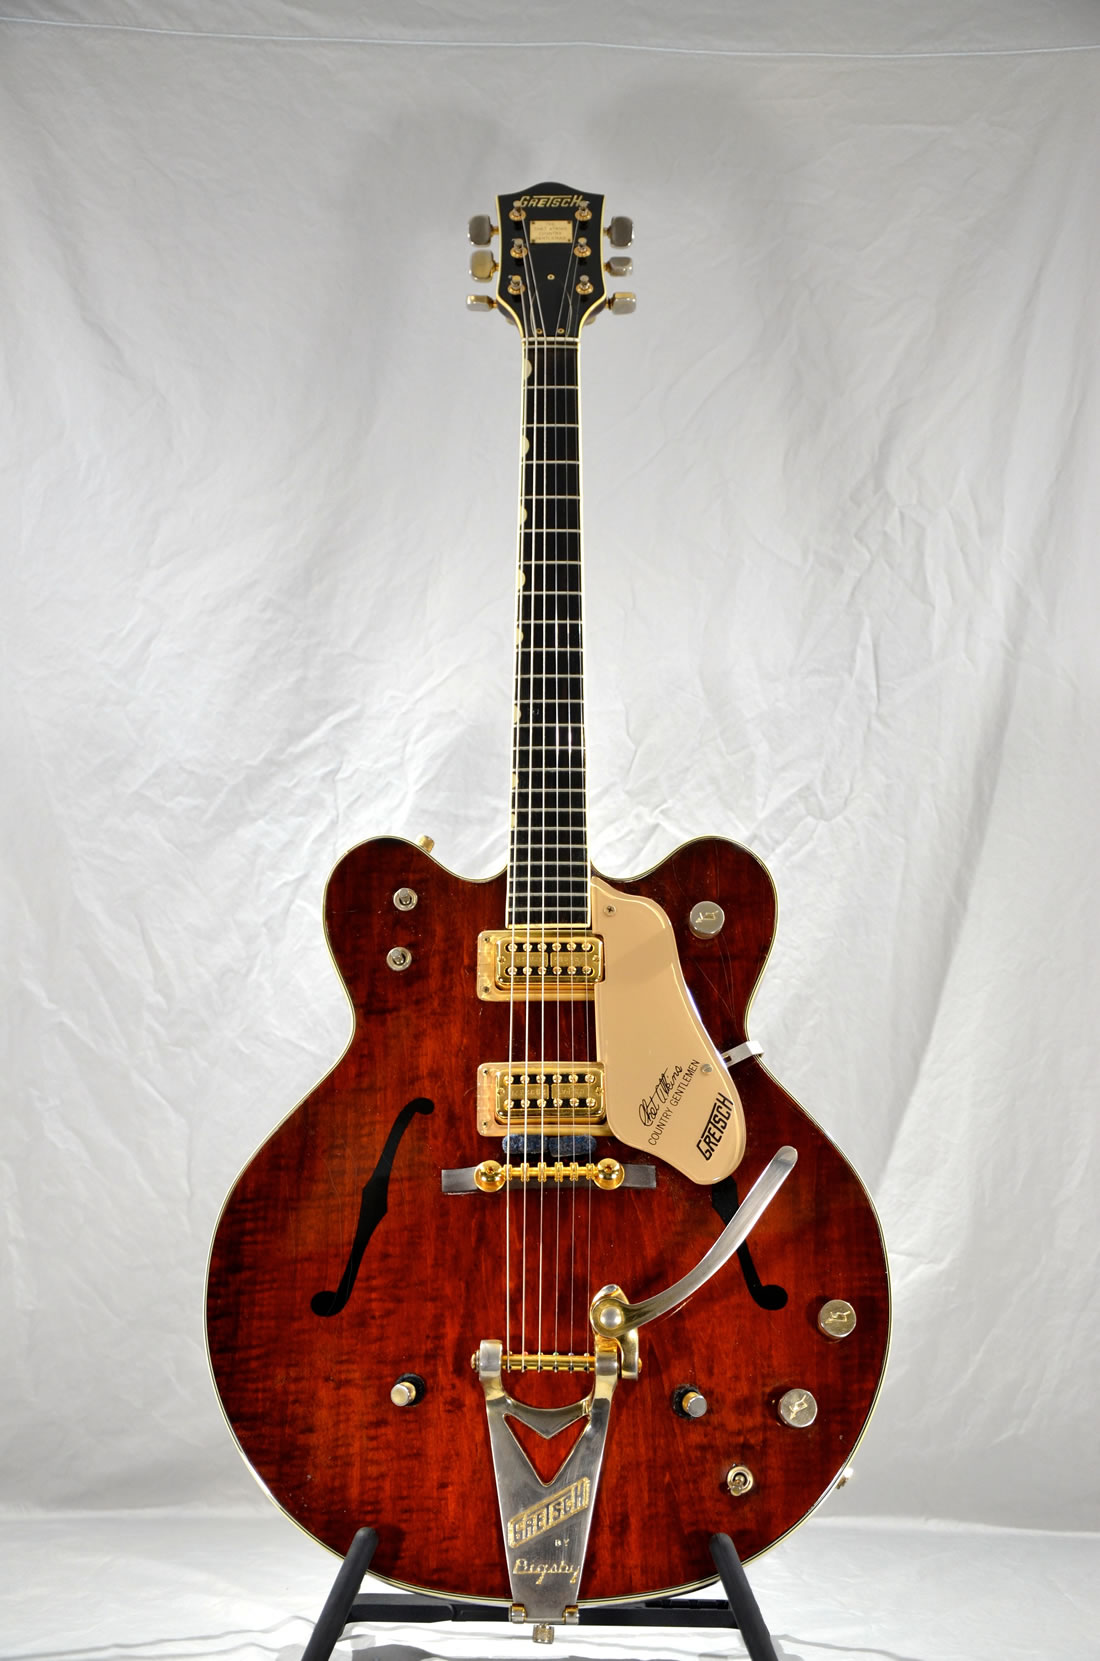 1967 Gretsch Country Gentleman Guitar